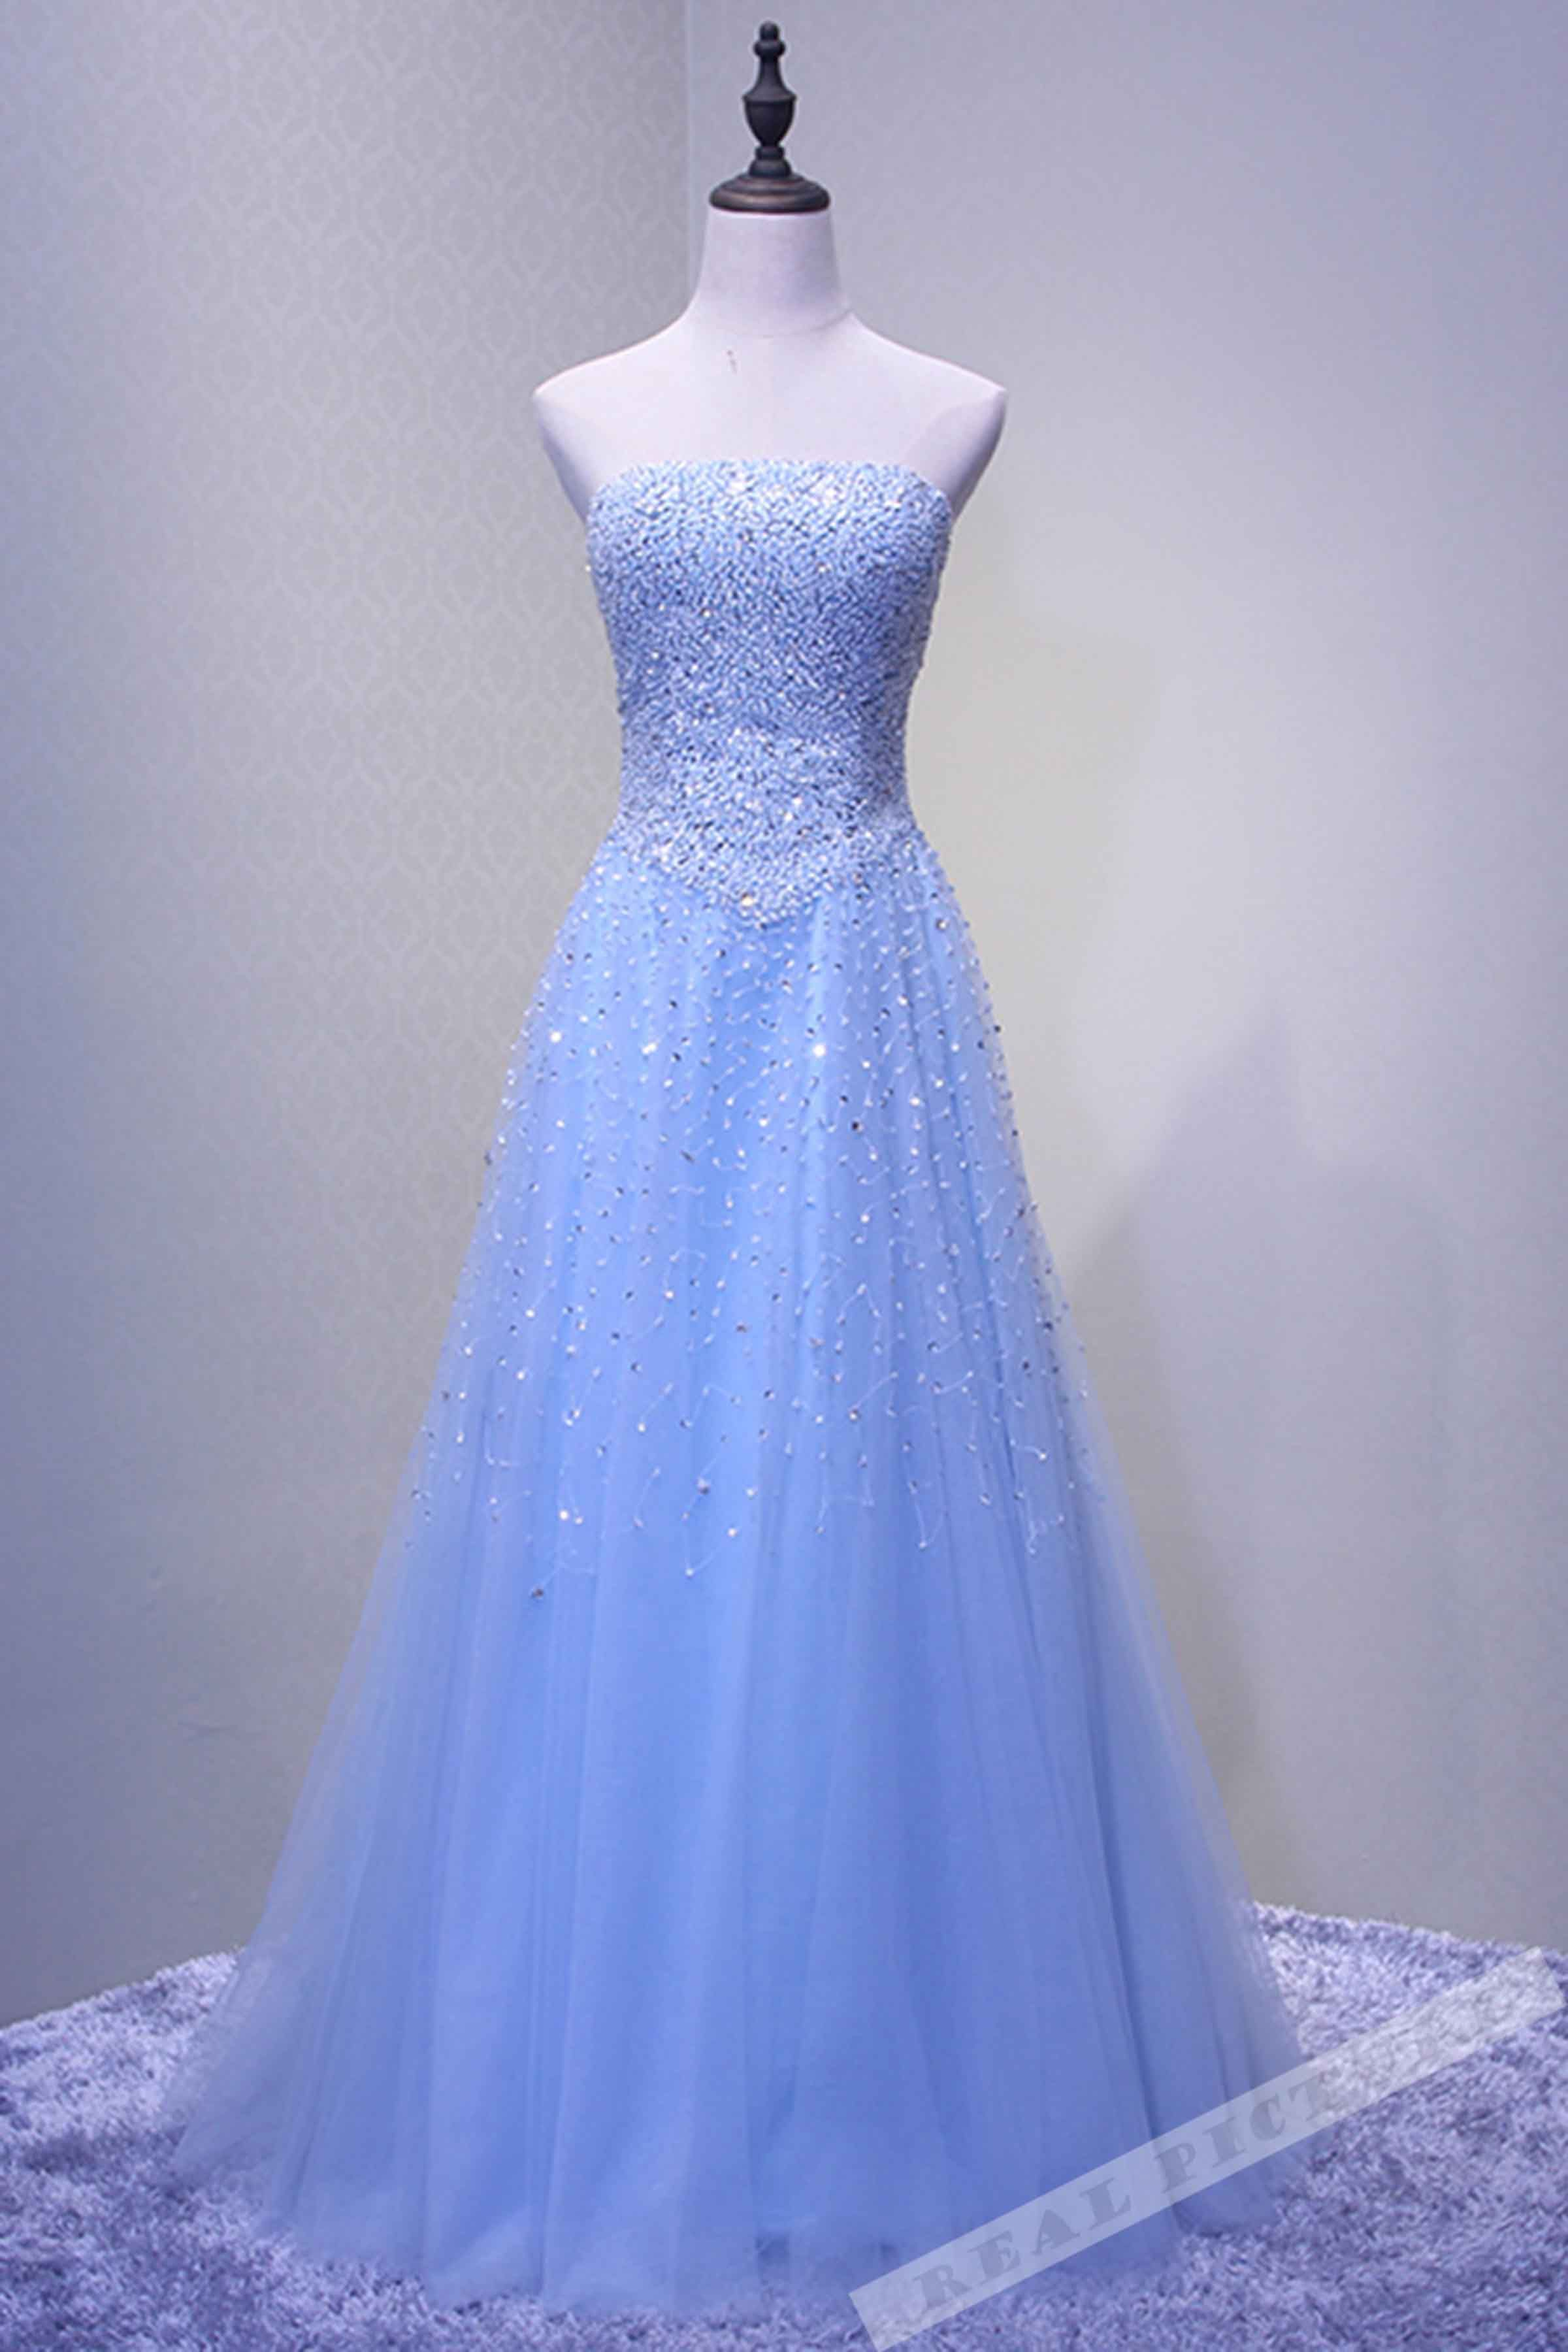 Light blue tulle sequins sweetheart A-line long prom dress #prom